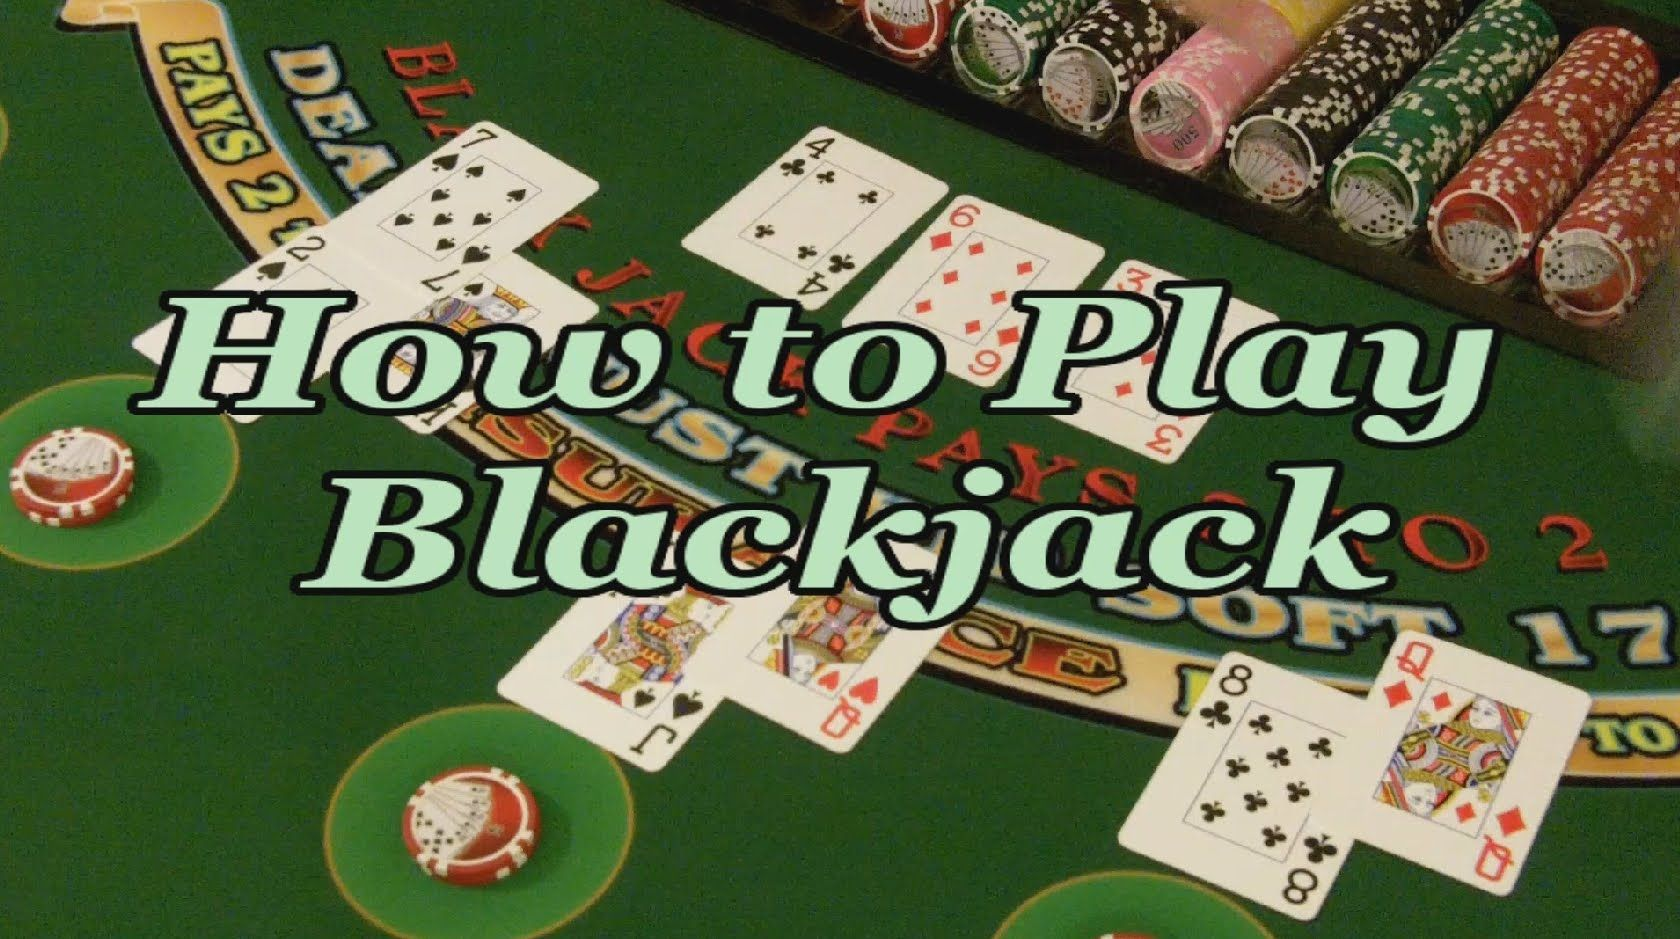 How to Play Blackjack FULL VIDEO Play casino, Online